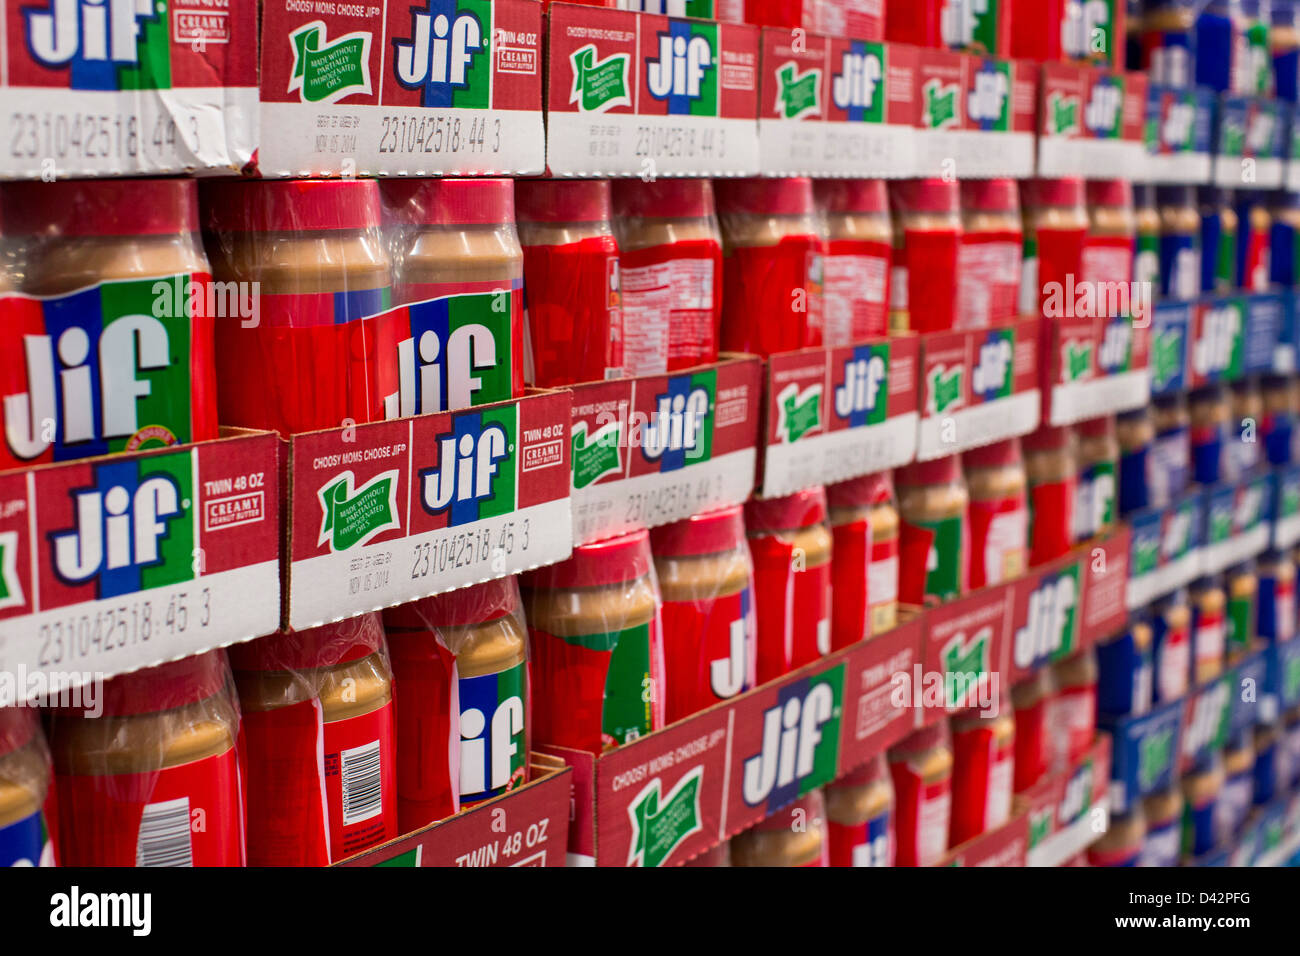 Jif peanut butter on display at a costco wholesale warehouse club jif peanut butter on display at a costco wholesale warehouse club altavistaventures Images